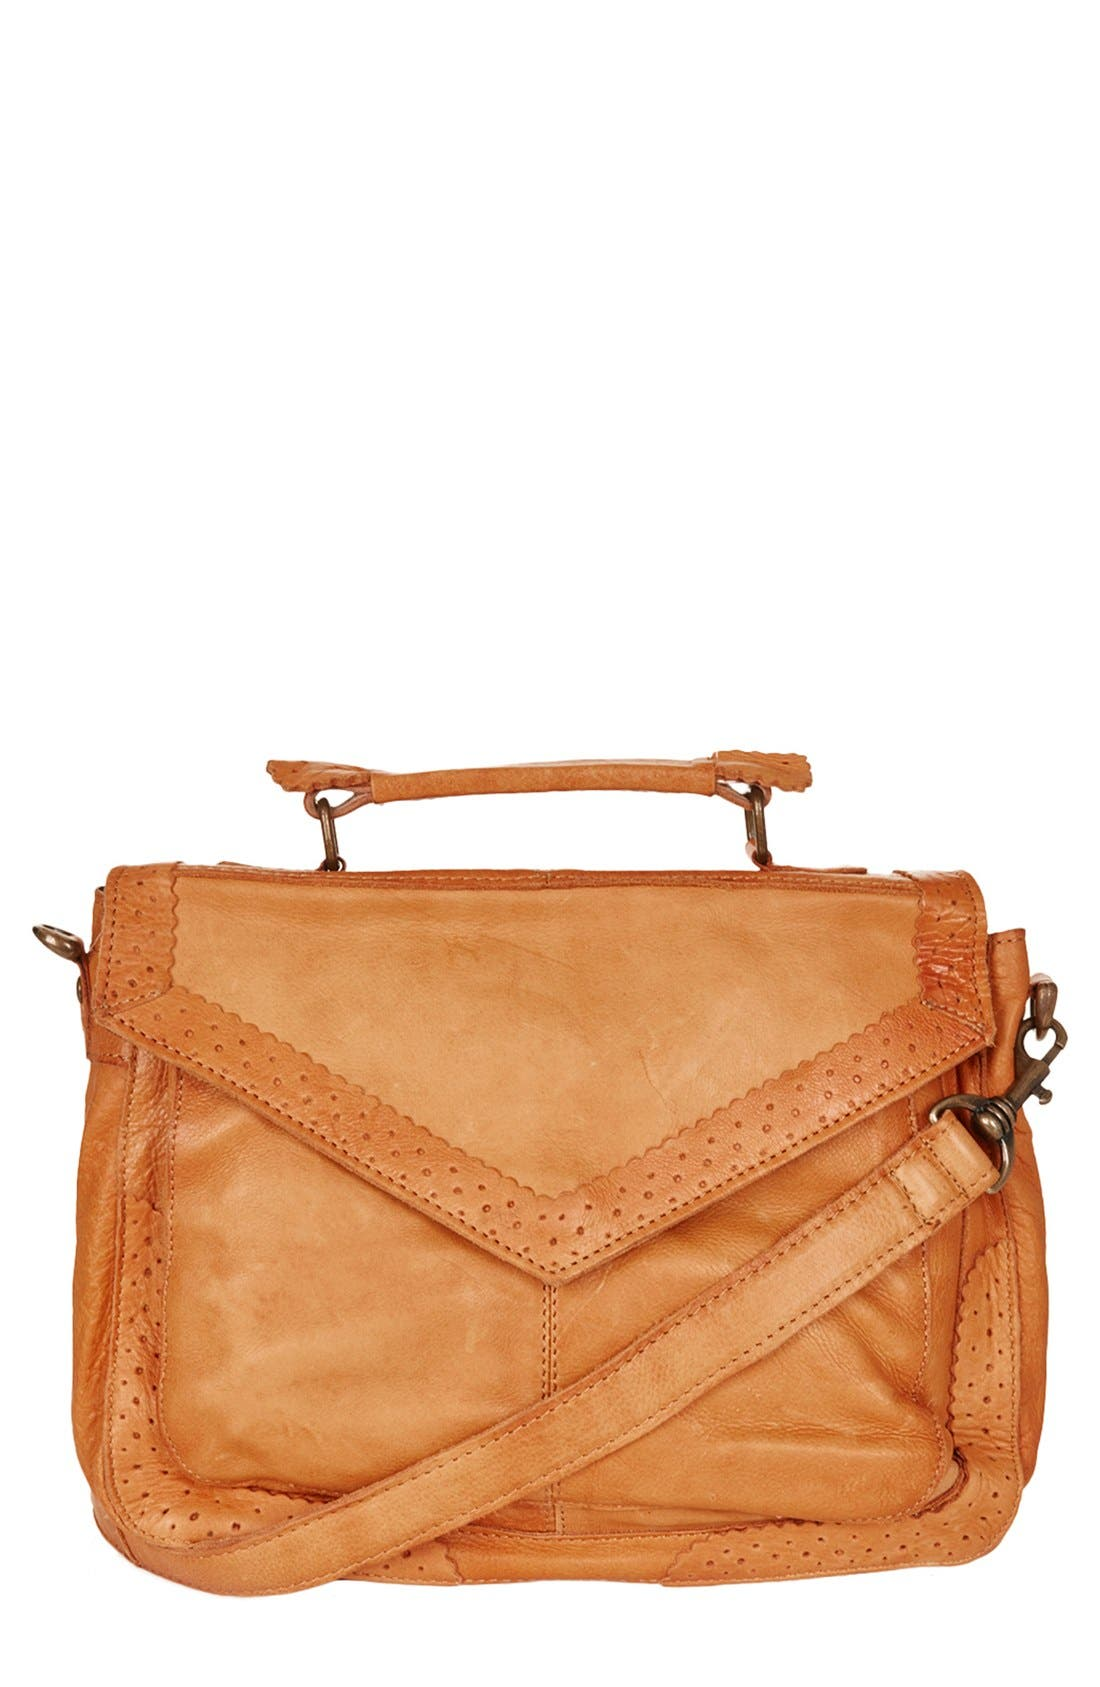 Alternate Image 1 Selected - Topshop 'Brogue' Leather Satchel